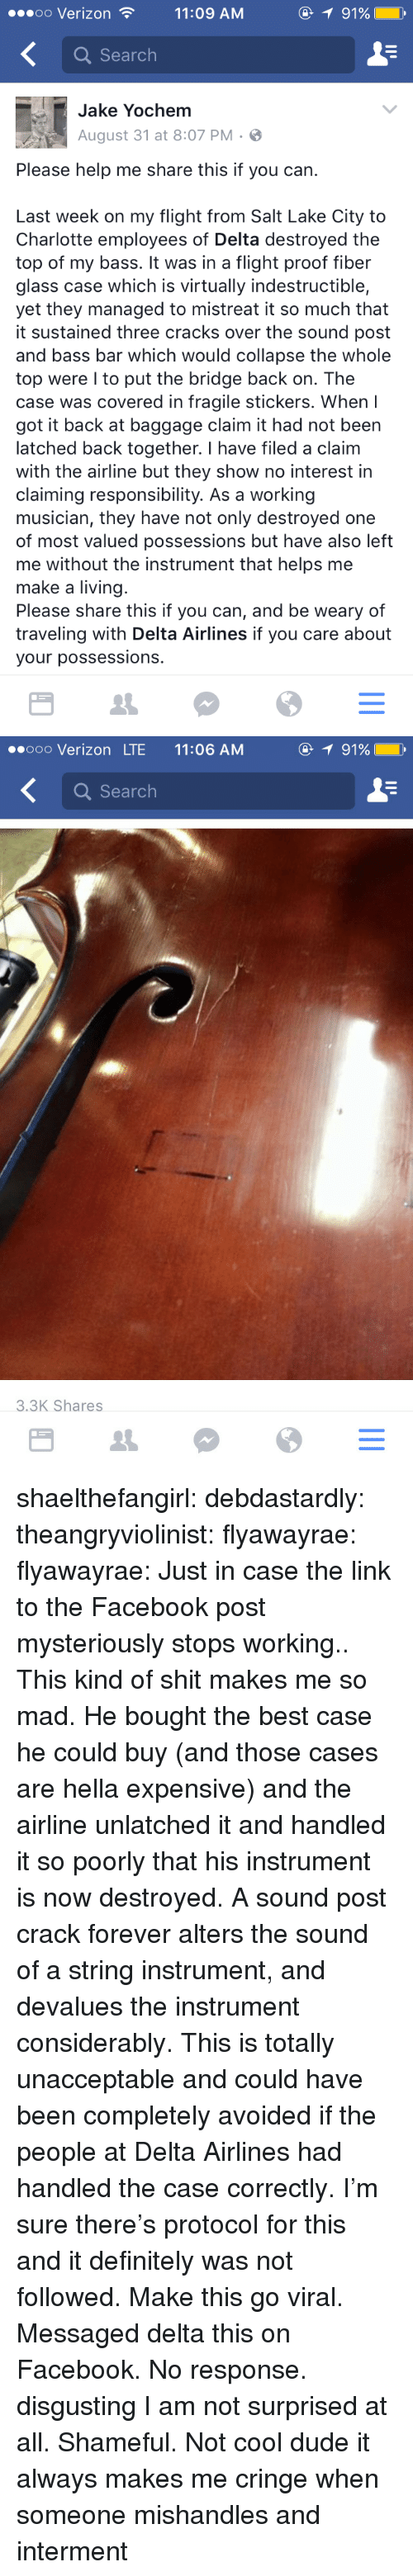 delta airlines: oo Verizon11:09 AM  91%  Q Search  Jake Yochem  August 31 at 8:07 PM.  Please help me share this if you can.  Last week on my flight from Salt Lake City to  Charlotte employees of Delta destroyed the  top of my bass. It was in a flight proof fiber  glass case which is virtually indestructible,  yet they managed to mistreat it so much that  it sustained three cracks over the sound post  and bass bar which would collapse the whole  top were I to put the bridge back on. The  case was covered in fragile stickers. When I  got it back at baggage claim it had not been  latched back together. I have filed a claim  with the airline but they show no interest in  claiming responsibility. As a working  musician, they have not only destroyed one  of most valued possessions but have also left  me without the instrument that helps me  make a living  Please share this if you can, and be weary of  traveling with Delta Airlines if you care about  your possessions.   ooo Verizon LTE 11:06 AM  1 91%  Q Search  3.3K Shares shaelthefangirl:  debdastardly:  theangryviolinist:  flyawayrae:  flyawayrae:  Just in case the link to the Facebook post mysteriously stops working..  This kind of shit makes me so mad. He bought the best case he could buy (and those cases are hella expensive) and the airline unlatched it and handled it so poorly that his instrument is now destroyed. A sound post crack forever alters the sound of a string instrument, and devalues the instrument considerably. This is totally unacceptable and could have been completely avoided if the people at Delta Airlines had handled the case correctly. I'm sure there's protocol for this and it definitely was not followed. Make this go viral.  Messaged delta this on Facebook. No response.  disgusting  I am not surprised at all. Shameful.  Not cool dude   it always makes me cringe when someone mishandles and interment